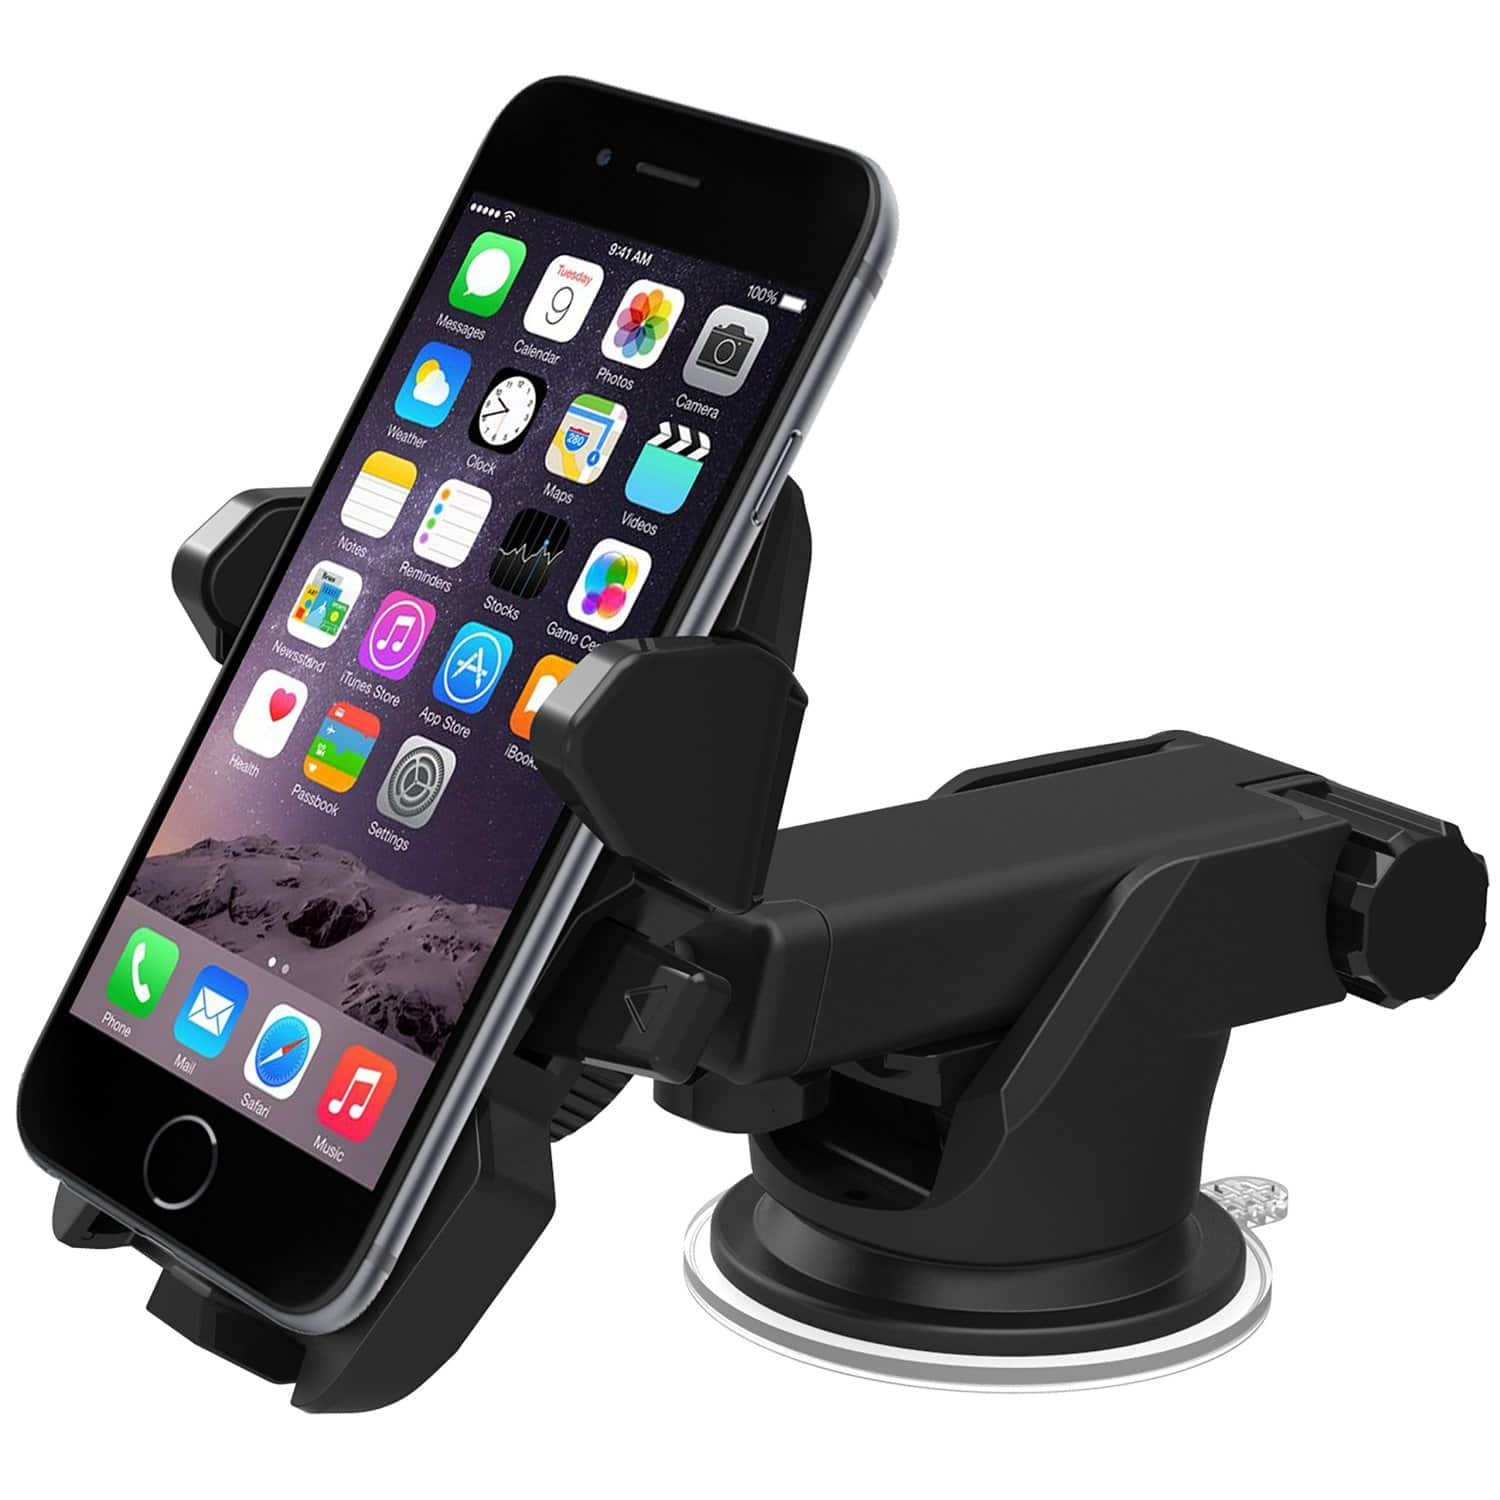 iOttie Easy One-Touch 2 Car Mount Holder for Smartphones  $8.50 + Free Shipping